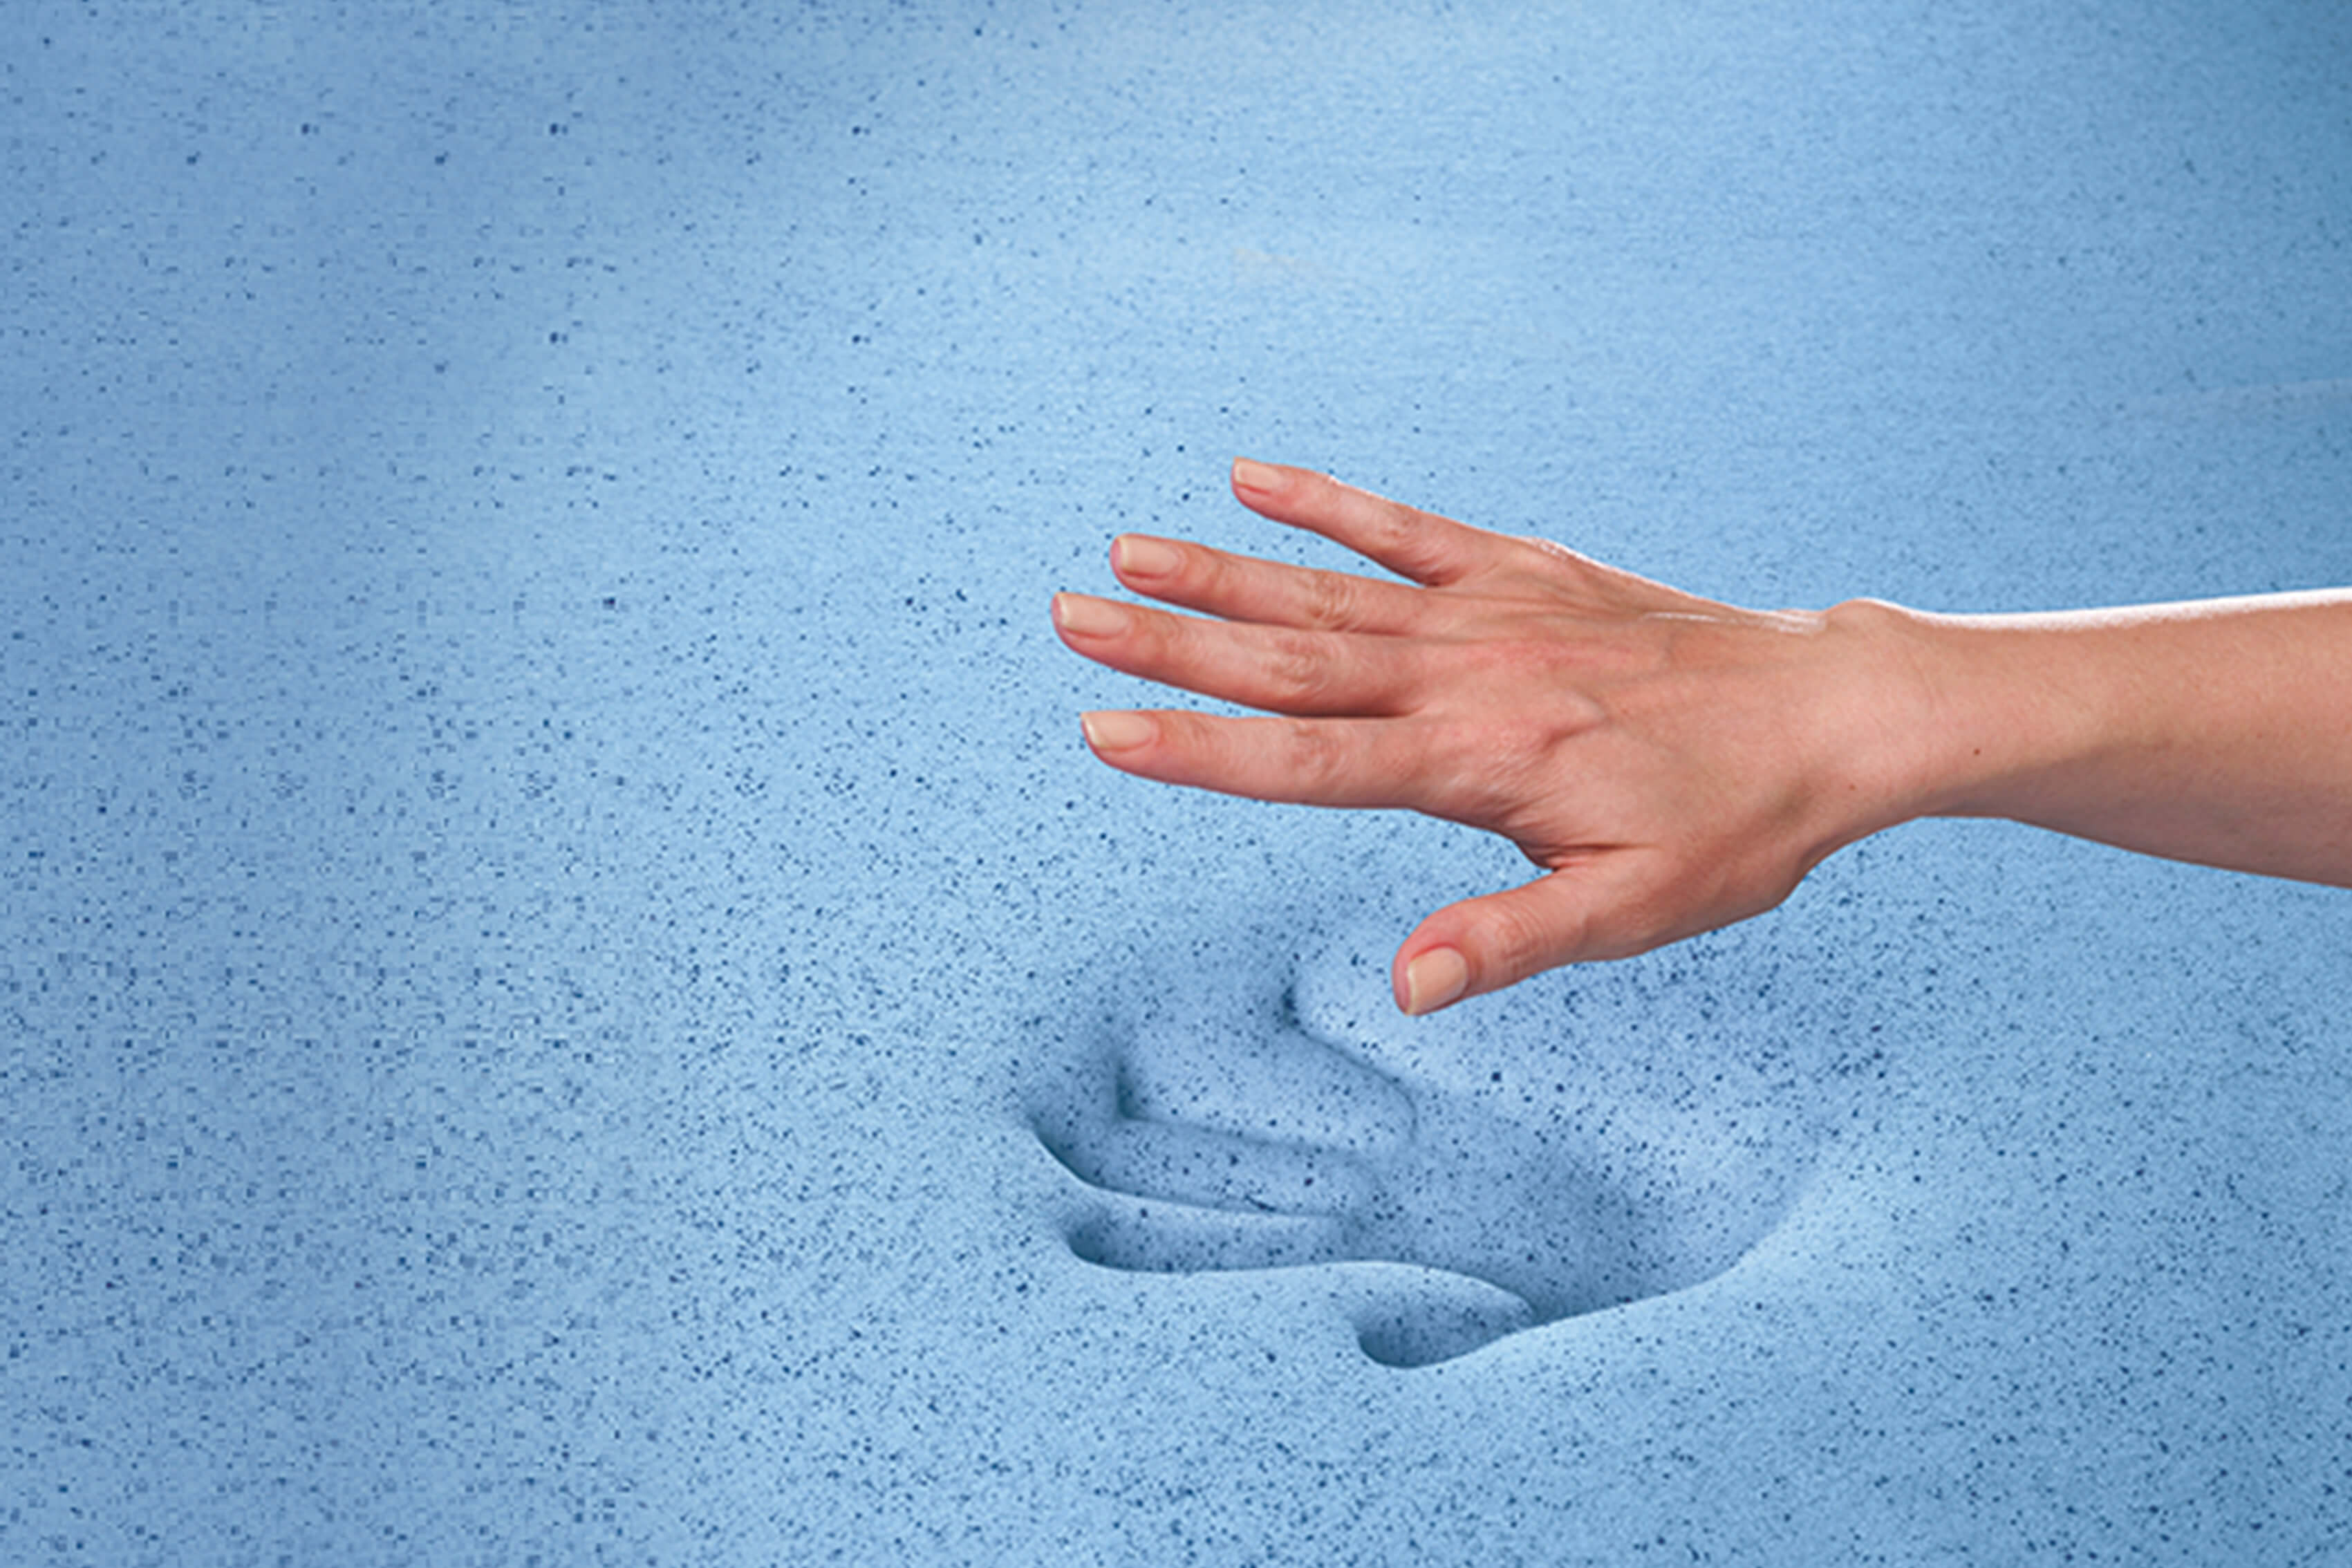 Hand leaving print in foam mattress